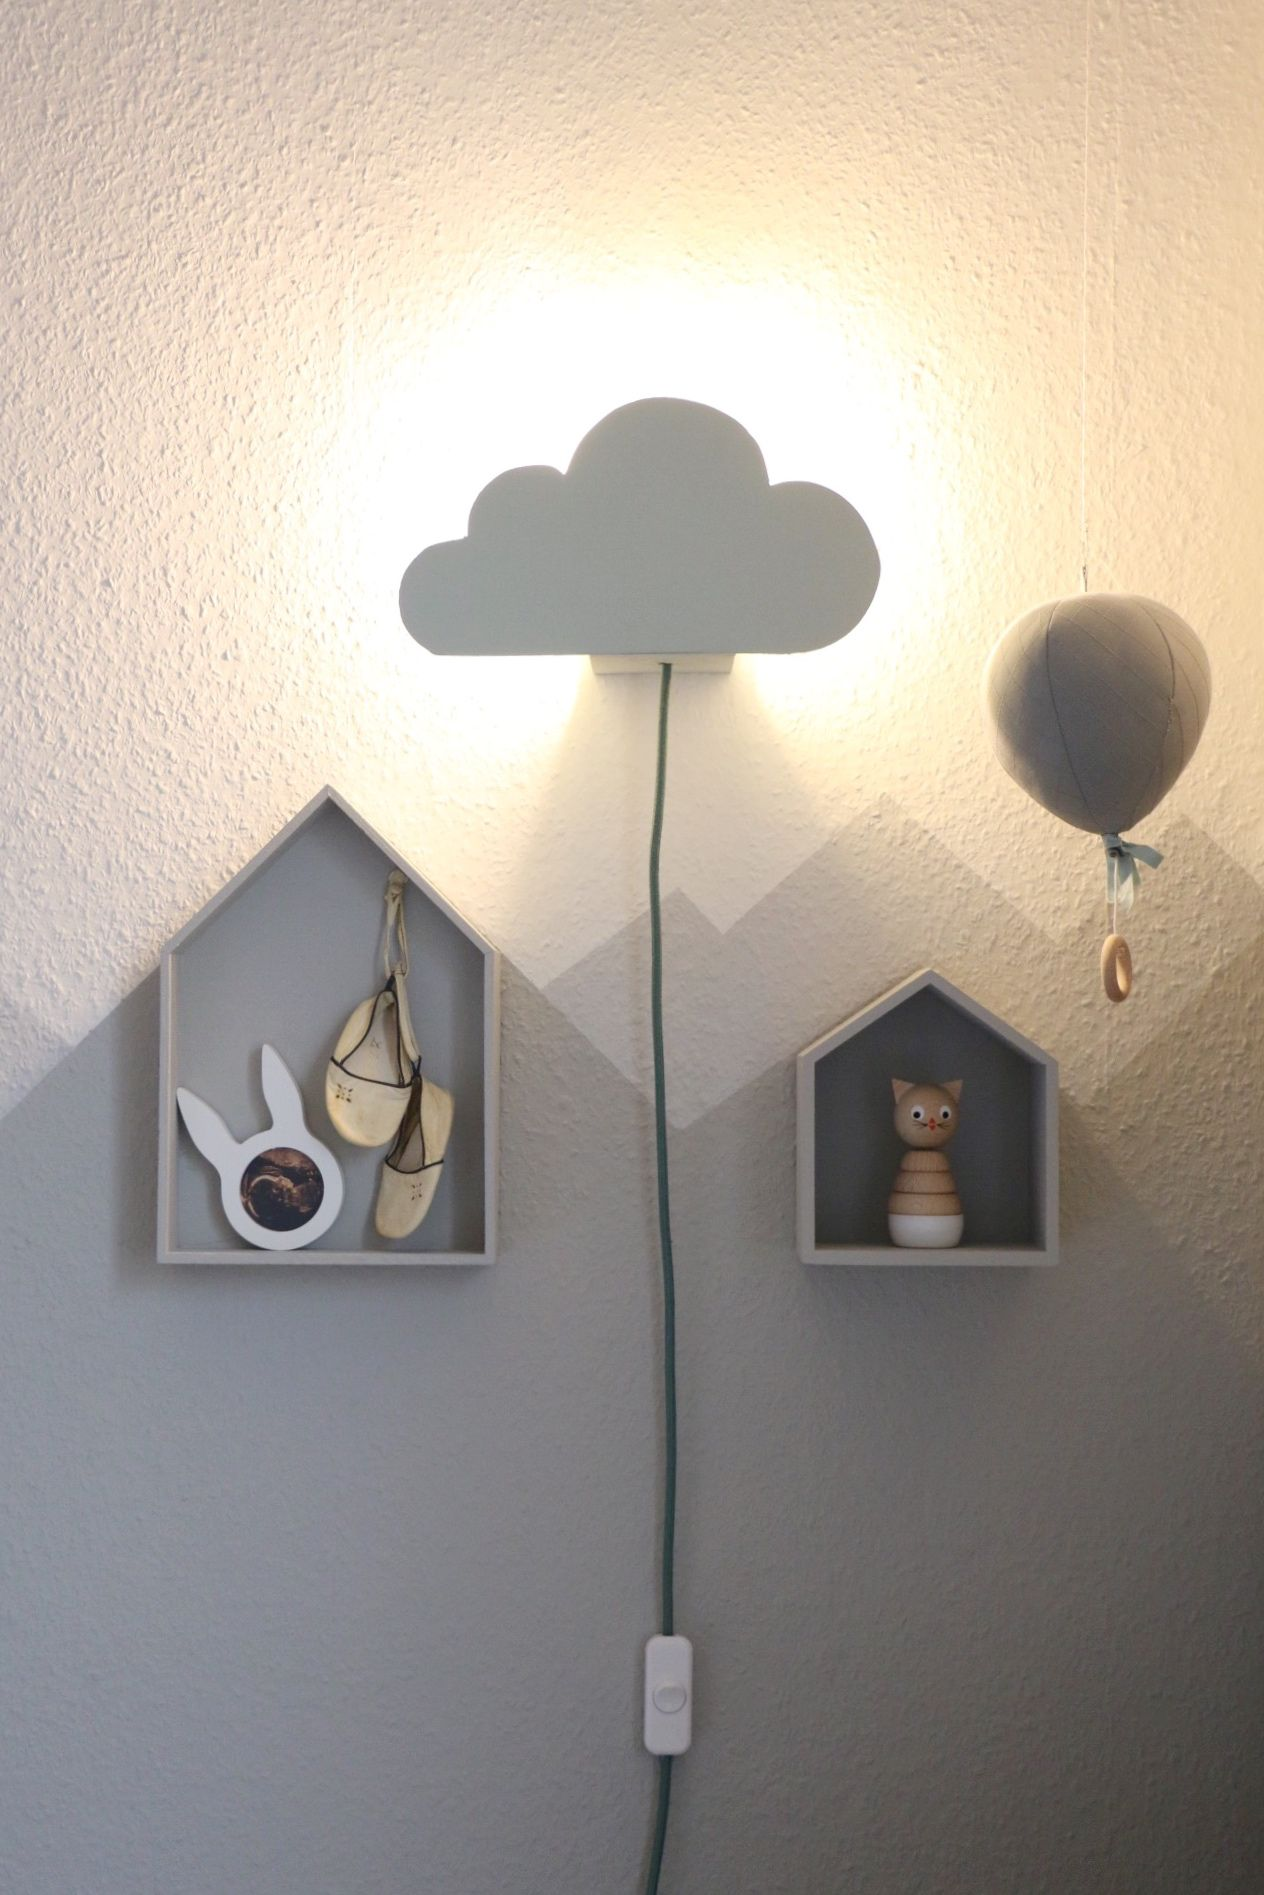 diy cloud lamp wolkenleuchte f r die wickelecke projects to try pinterest kinderzimmer. Black Bedroom Furniture Sets. Home Design Ideas